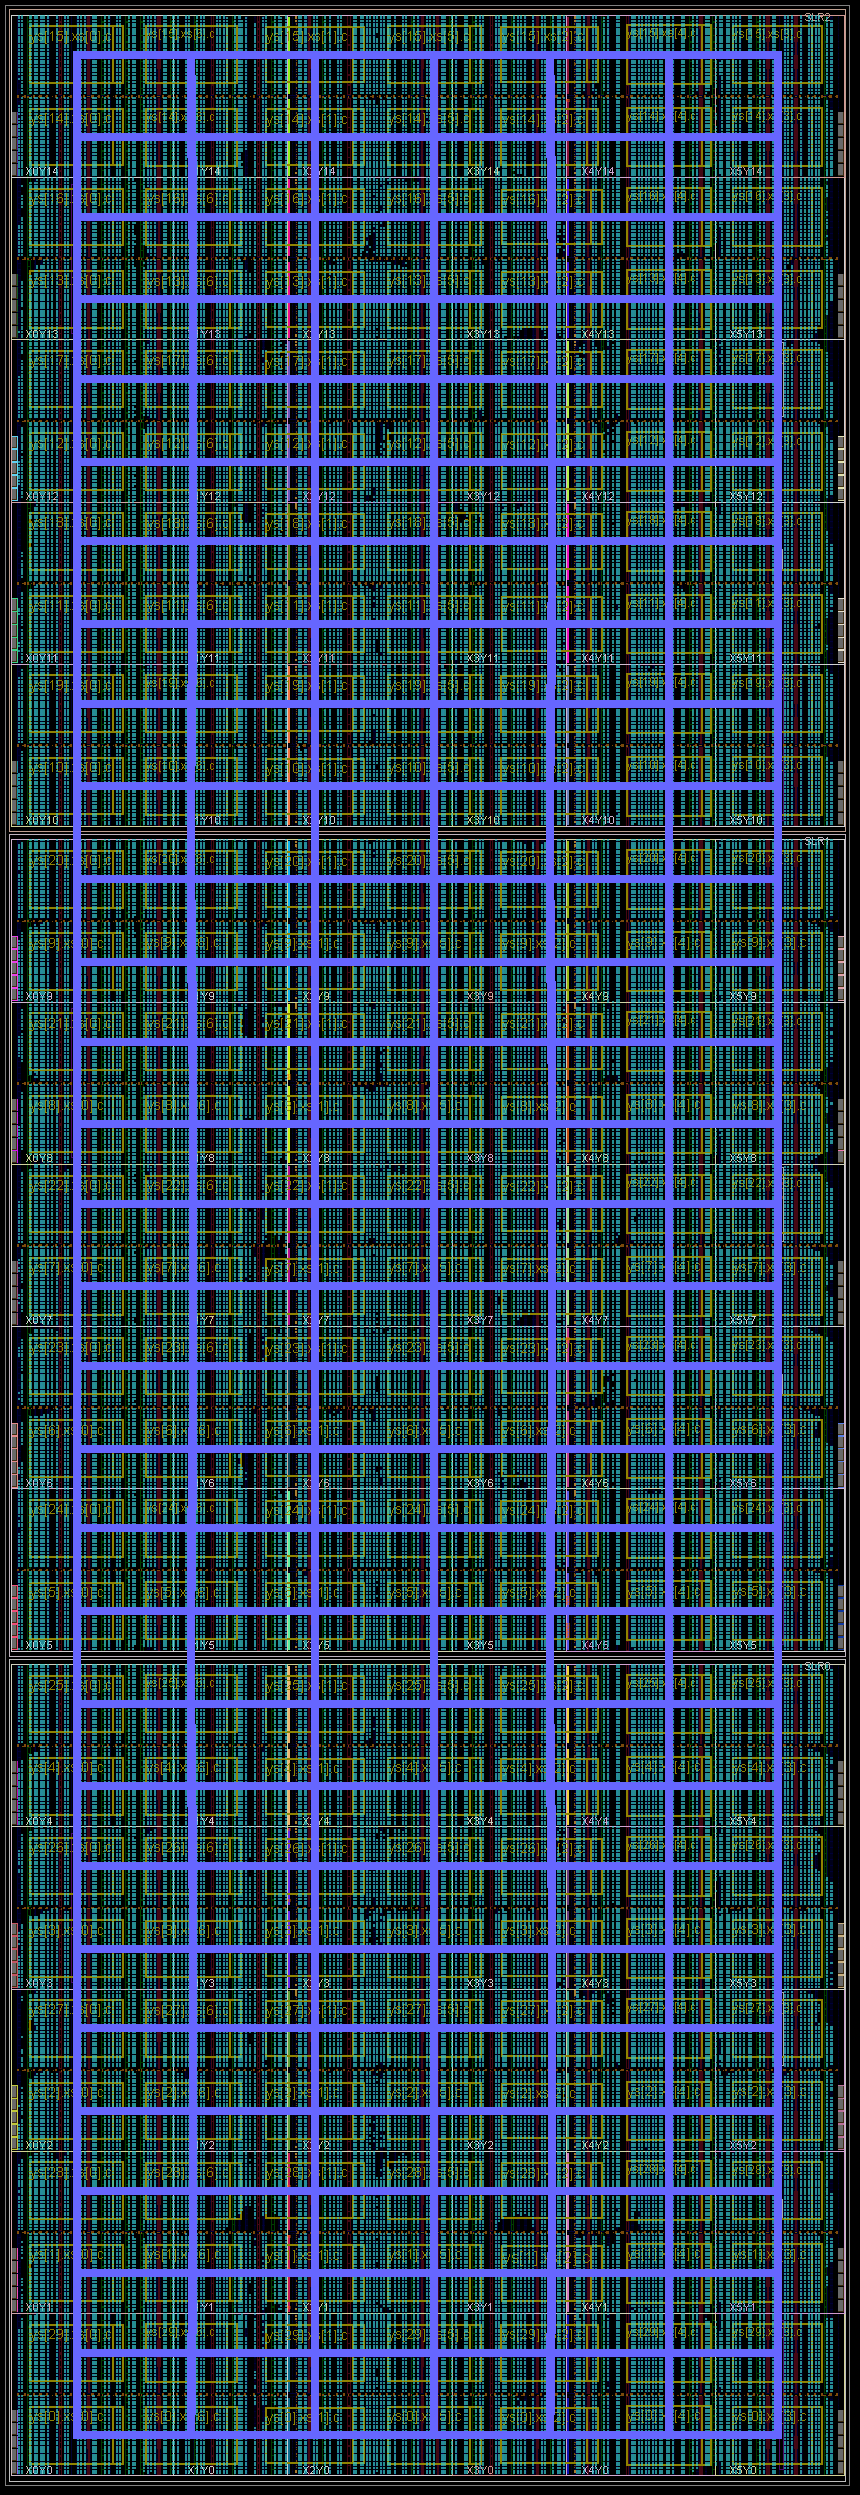 An example 1680 GRVI system implemented in a Xilinx Virtex UltraScale+ VU9P. This GRVI Phalanx comprises NX=7 x NY=30 = 210 clusters, each cluster with 8 GRVI cores and a 8-ported 128 KB cluster shared memory. The clusters are interconnected on a Hoplite NOC, with the Hoplite routers configured with 290b data payloads (including 32b address and 256b data), achieving a bandwidth of about 70 Gb/s/link and a NOC bisection bandwidth of 900 Gb/s. Each cluster can send or receive 32 B per cycle into the NOC. The GRVI Phalanx architecture anticipates a variety of configurable accelerators coupled to the processors, the cluster shared RAM, or the NOC.